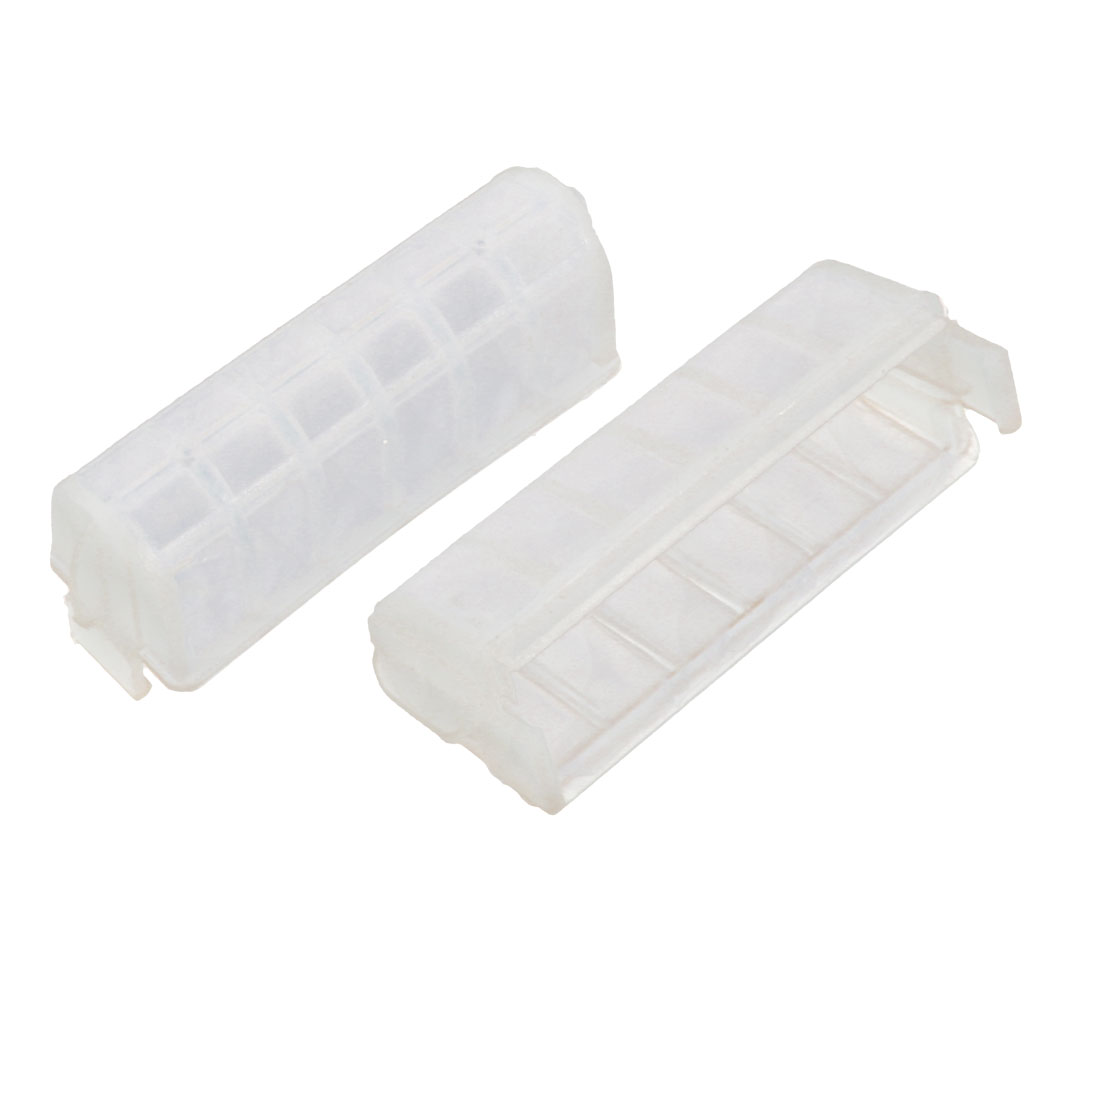 2pcs New Replacement Guard Panel Engine 250 Air Filter Cleaner Accessories